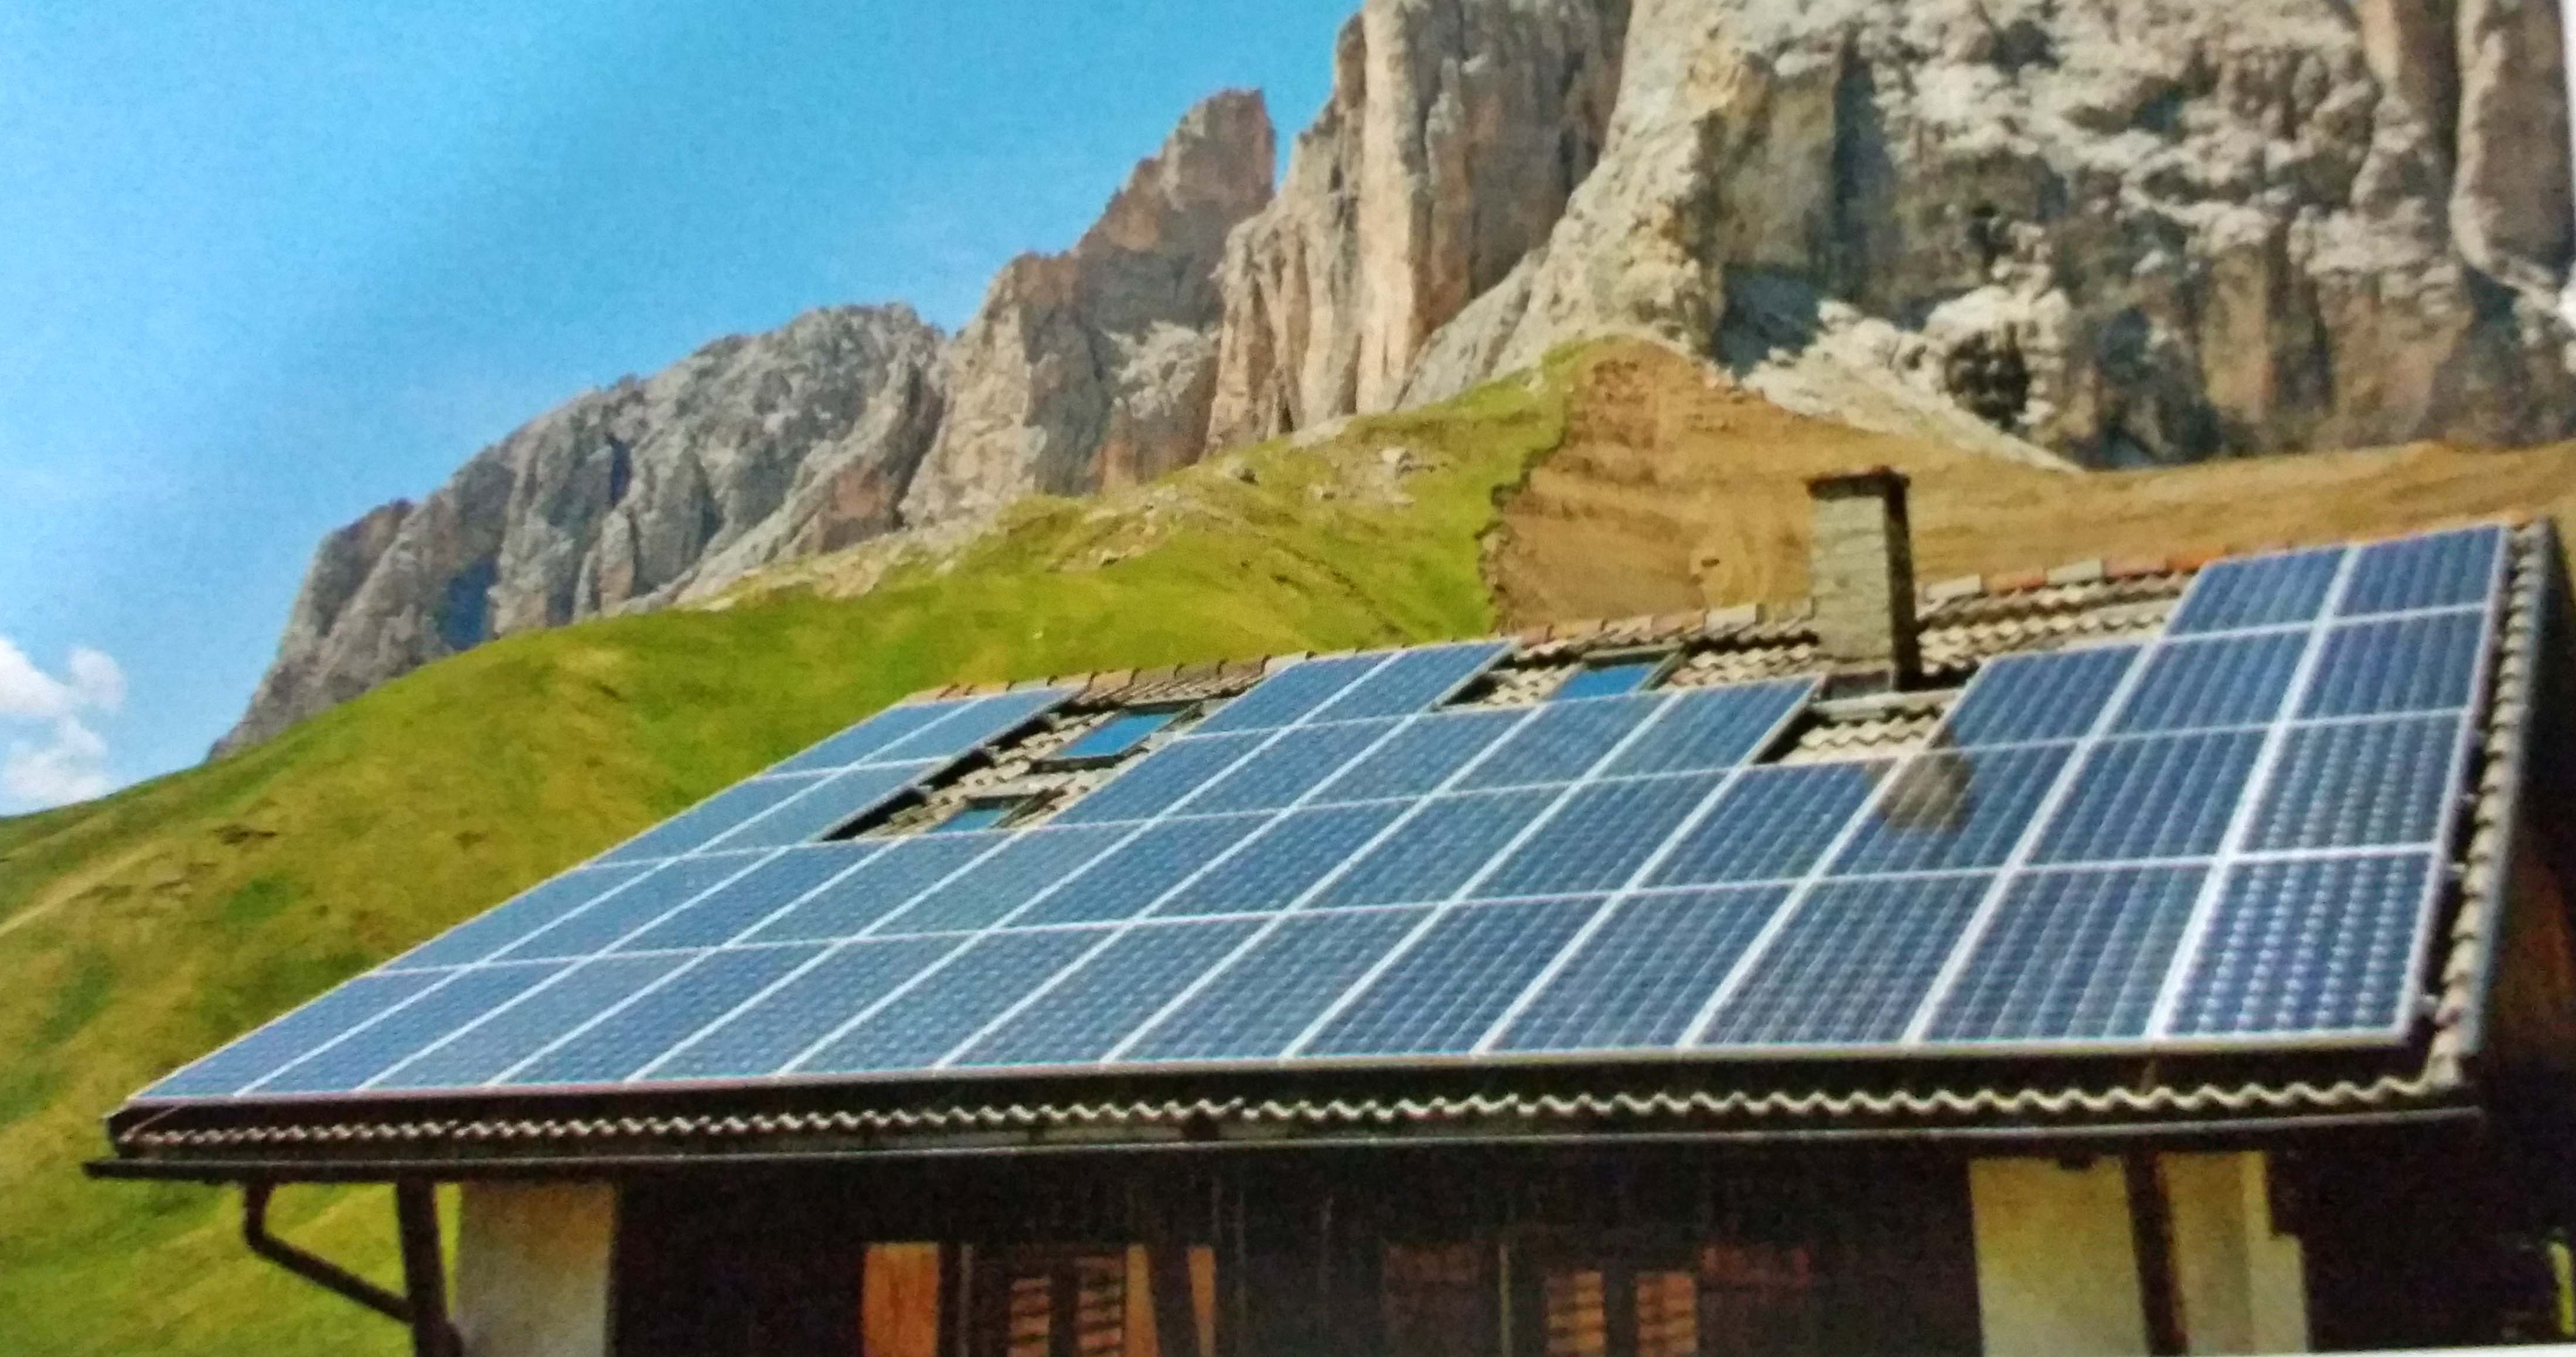 5 Smart Uses Of Solar Energy At Home The Smart Home Decor